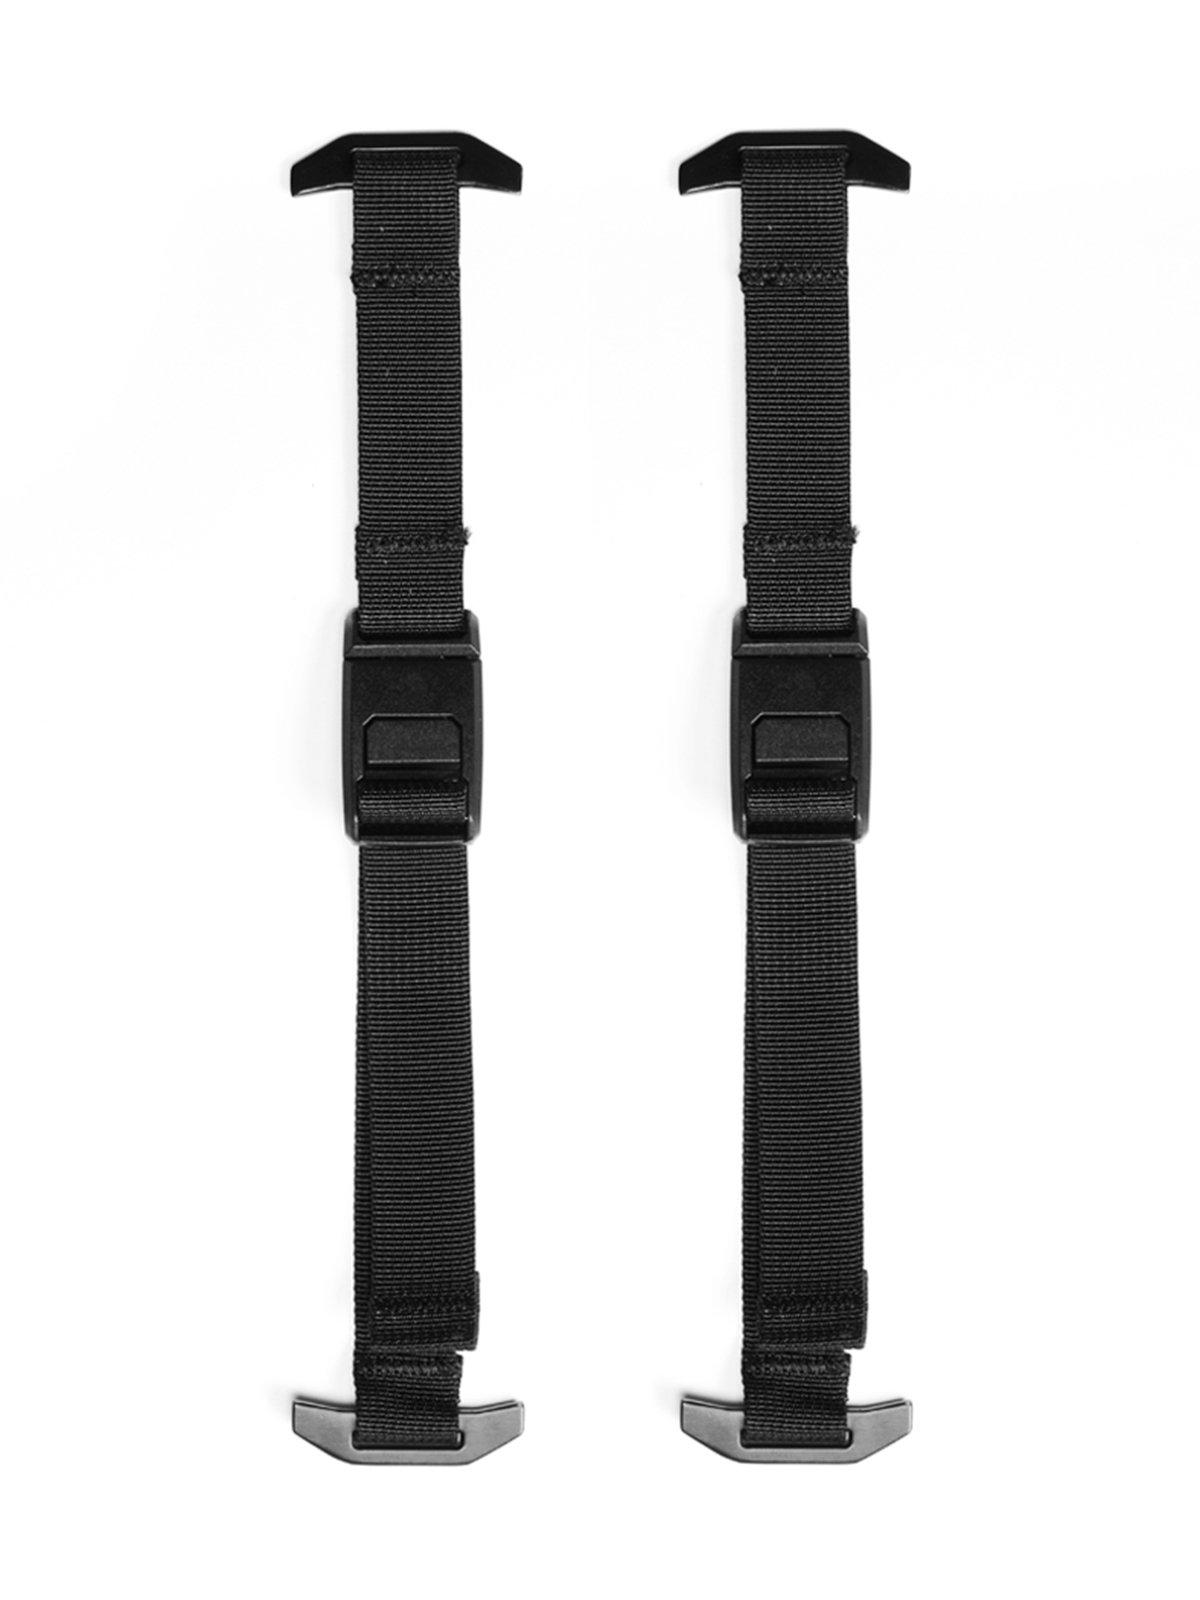 Black Ember Forge Maglock Compression Straps Jet Black (Set of 4)